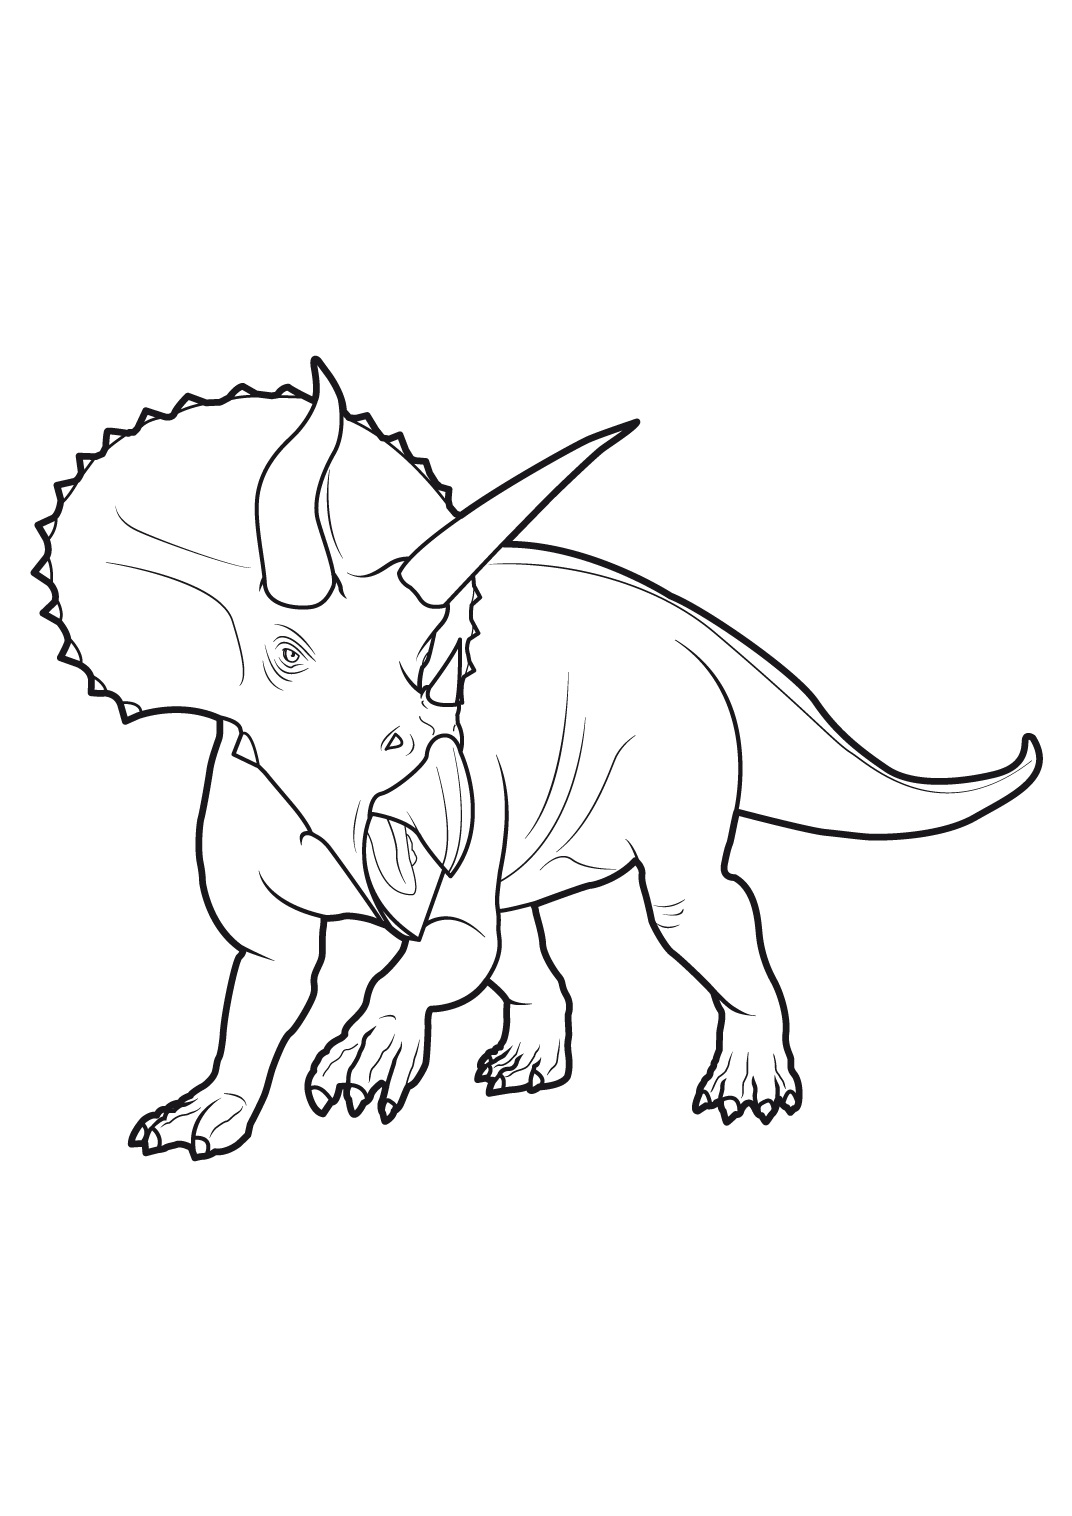 woody coloring pages - coloriage a dessiner gratuit dinosaure king